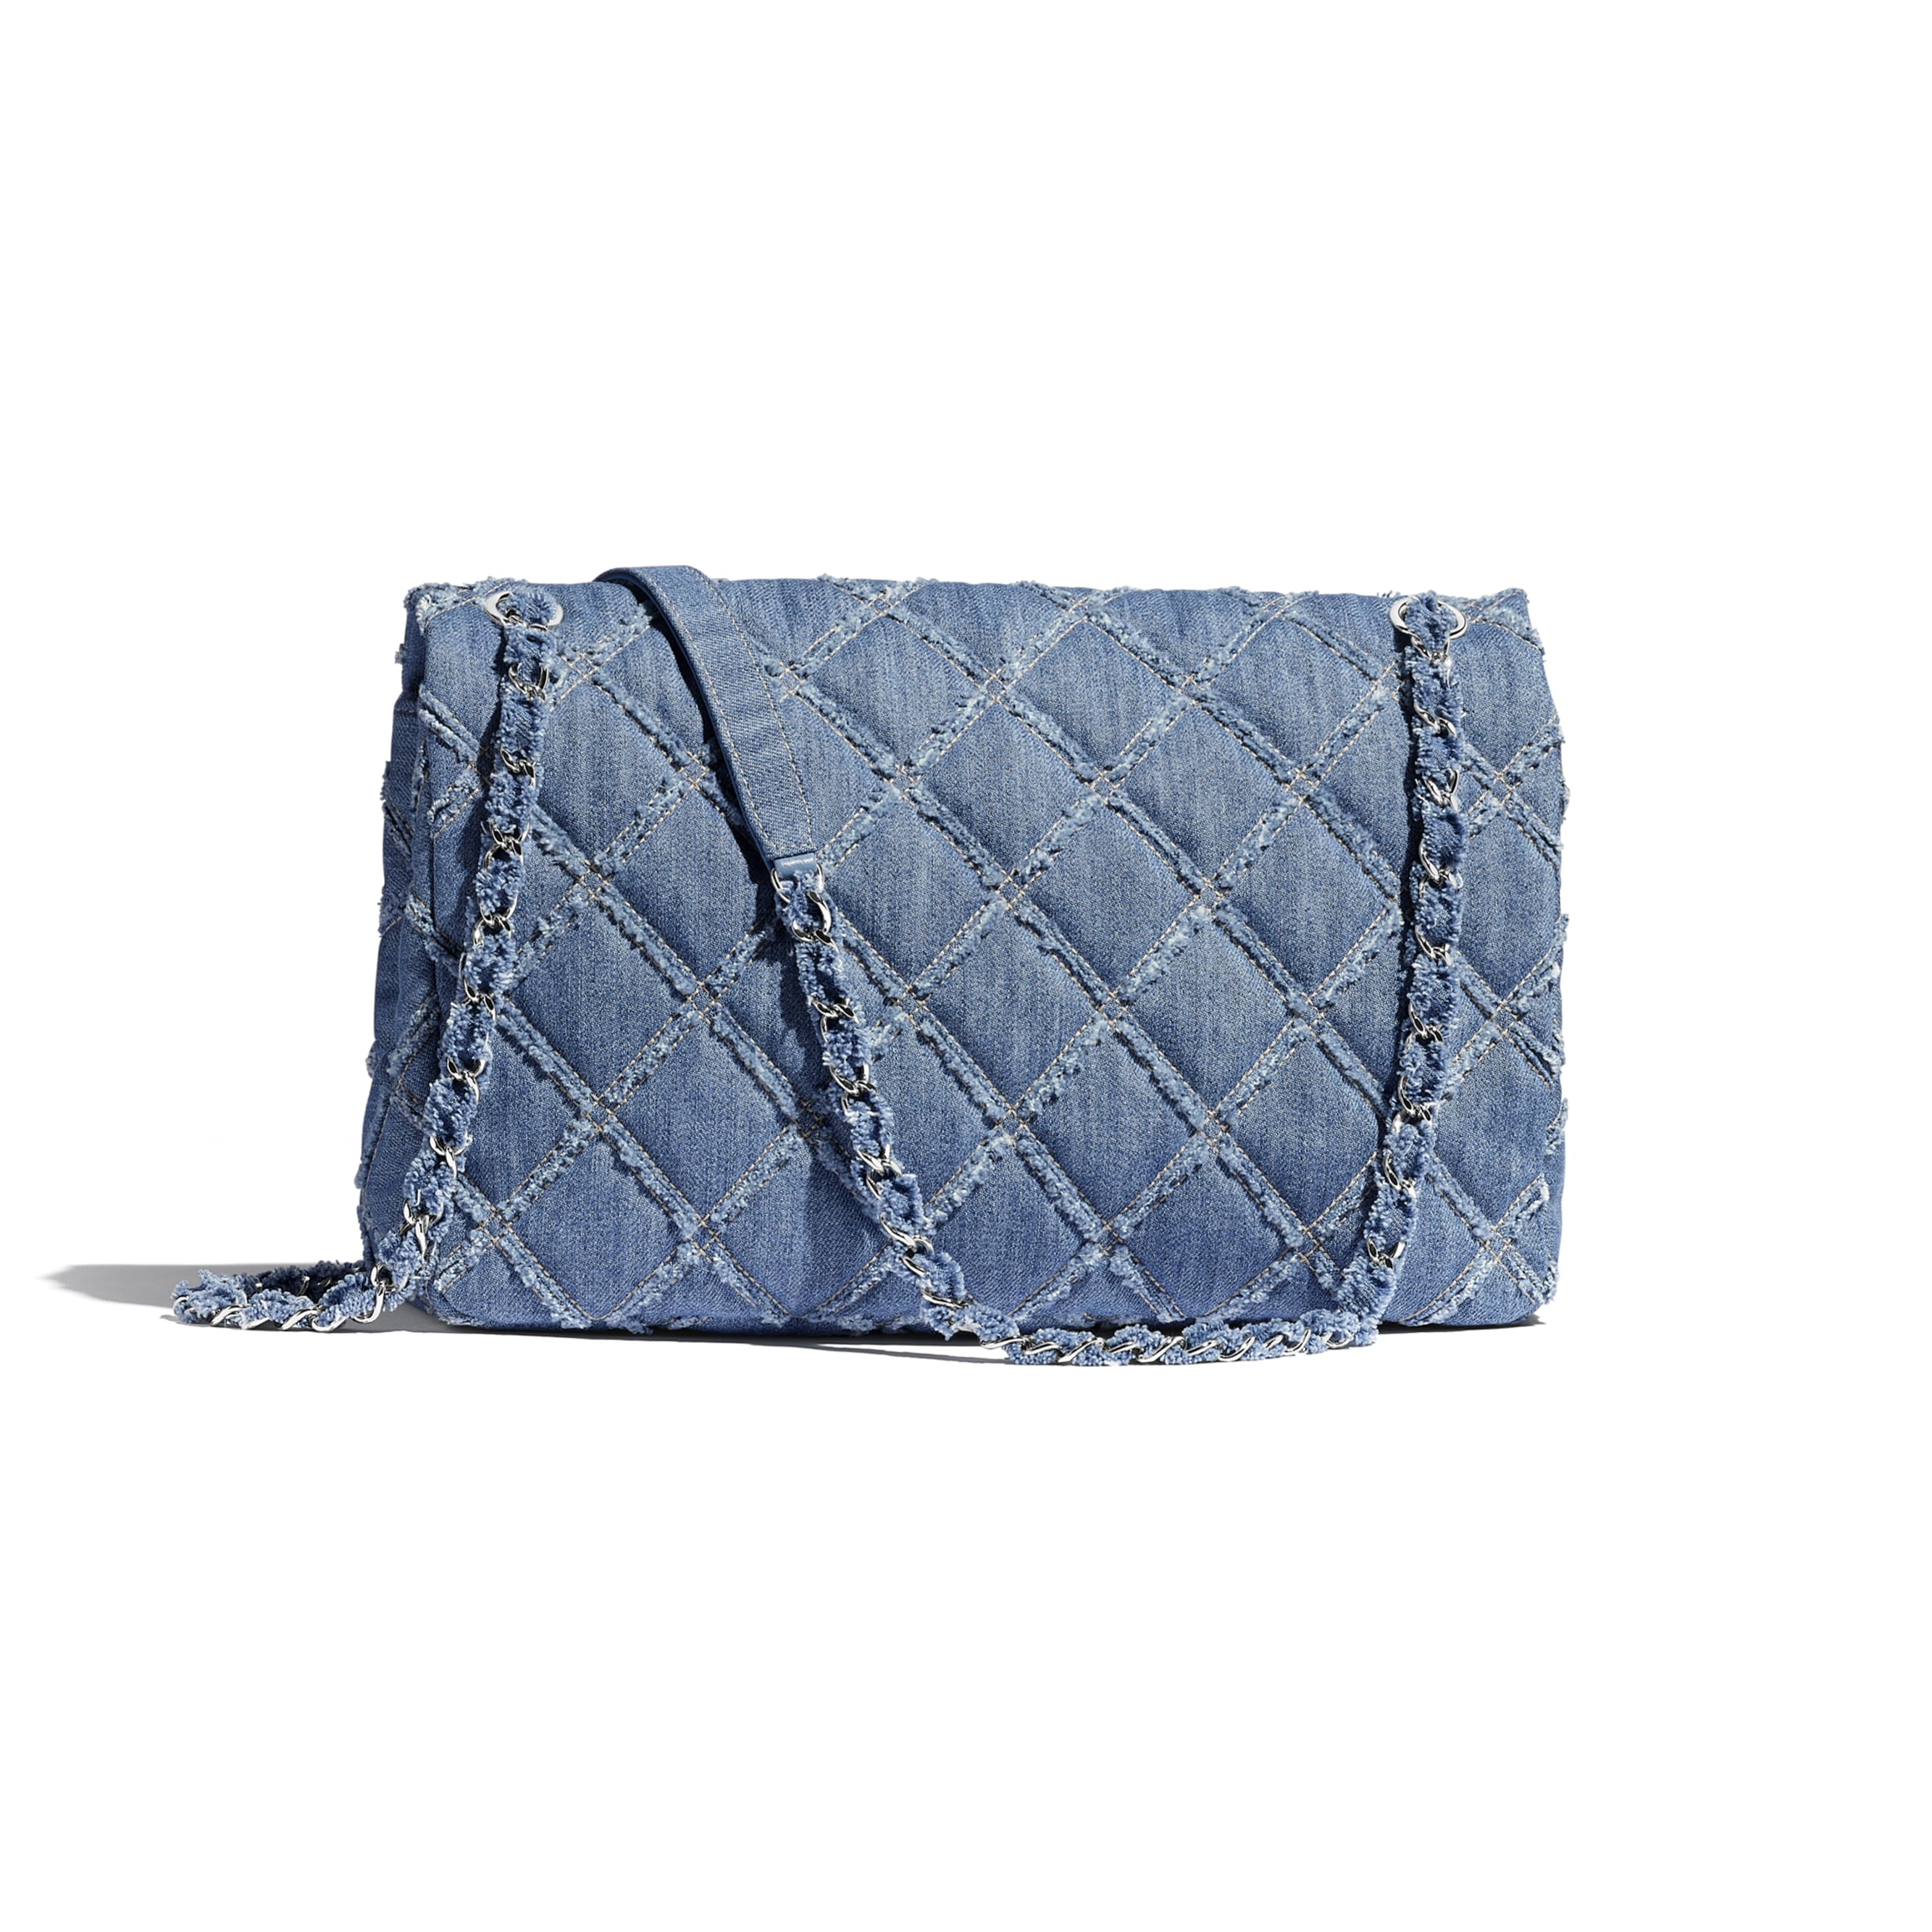 Large Flap Bag - Blue - Denim & Silver-Tone Metal - CHANEL - Alternative view - see standard sized version